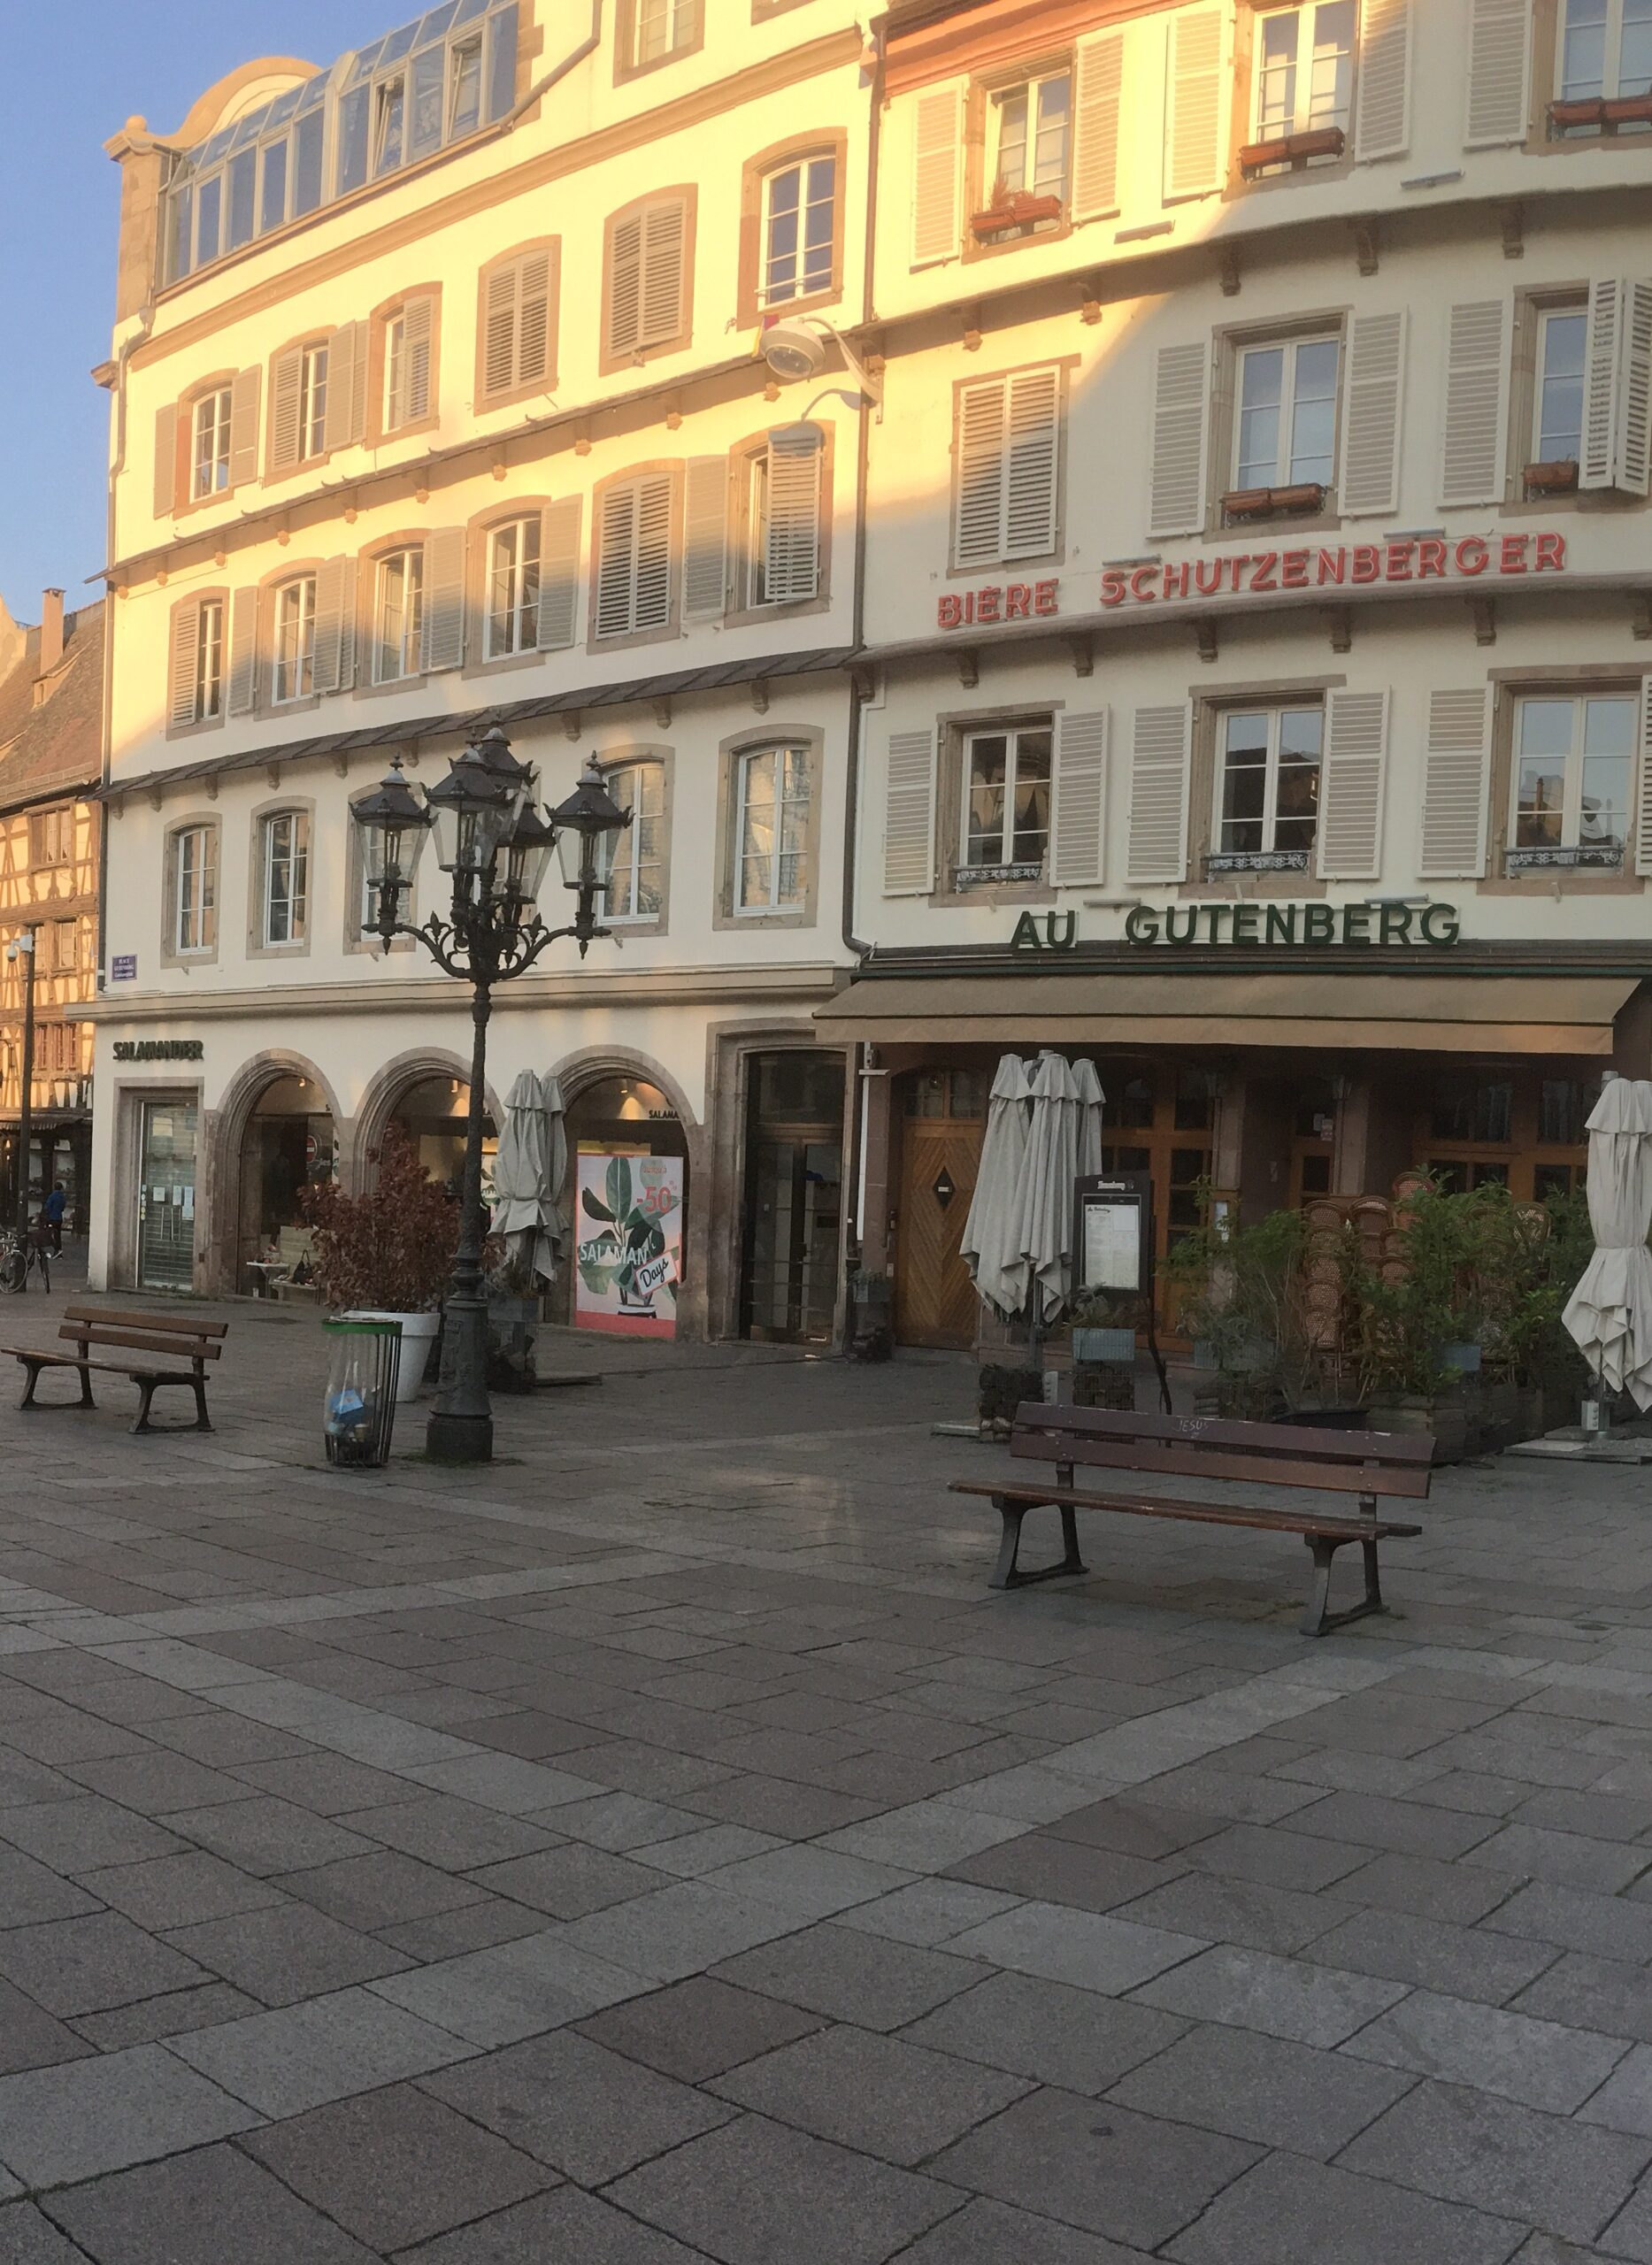 Market square in France